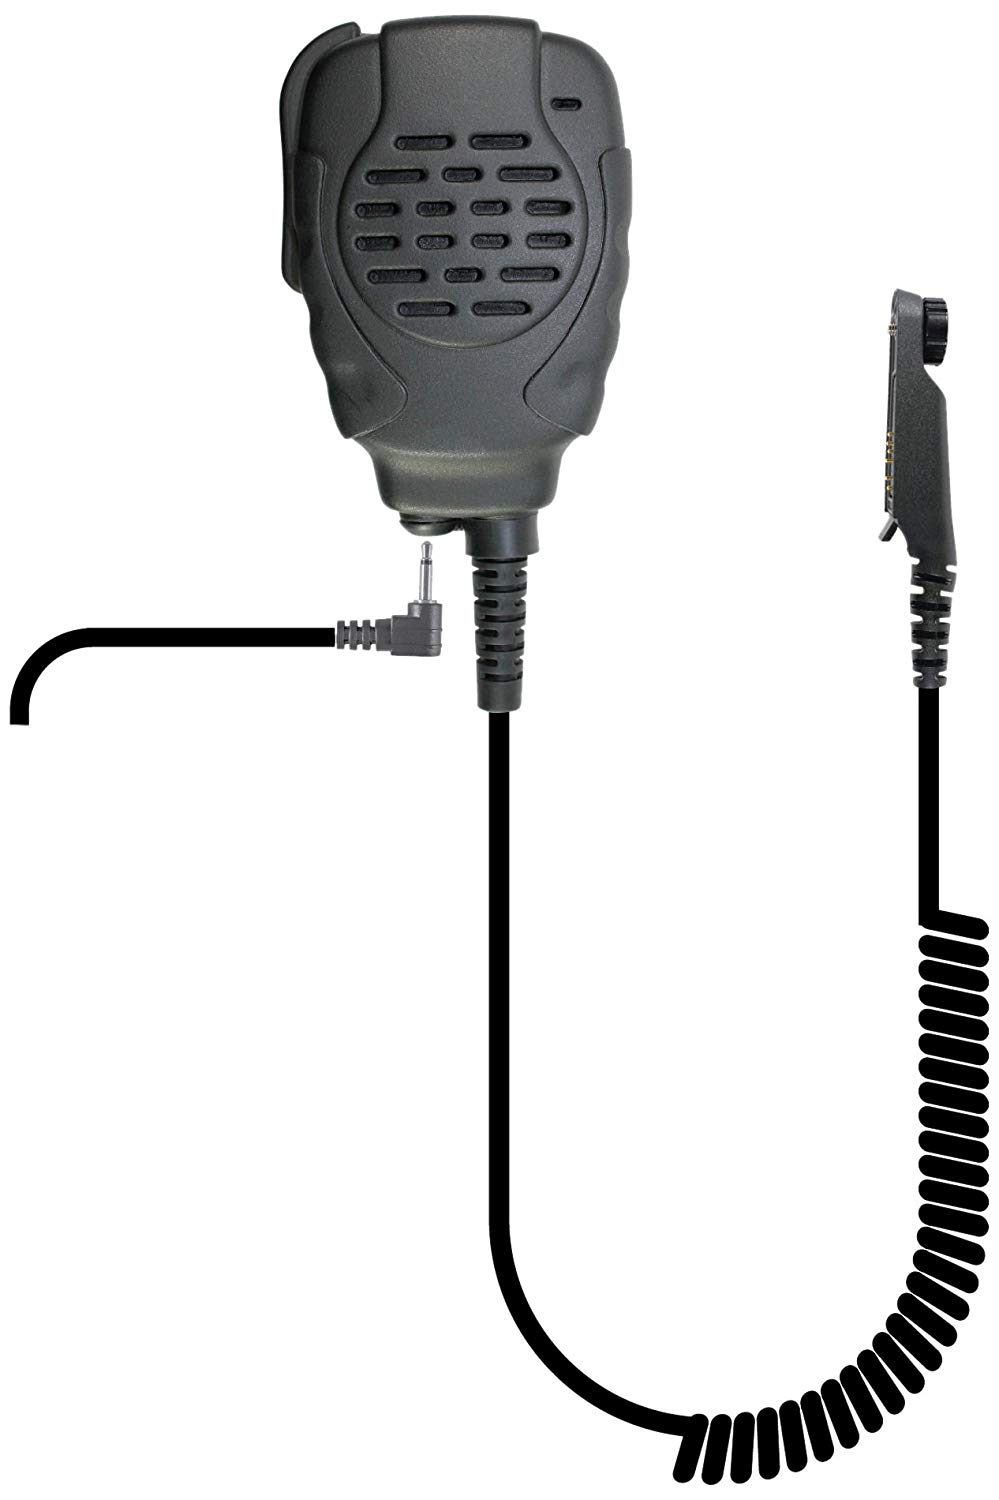 PRYME SPM-2203 Trooper II Waterproof & Noise Canceling Trooper II Spm-2200 Series - Waterproof Remote Speaker Microphone, Black